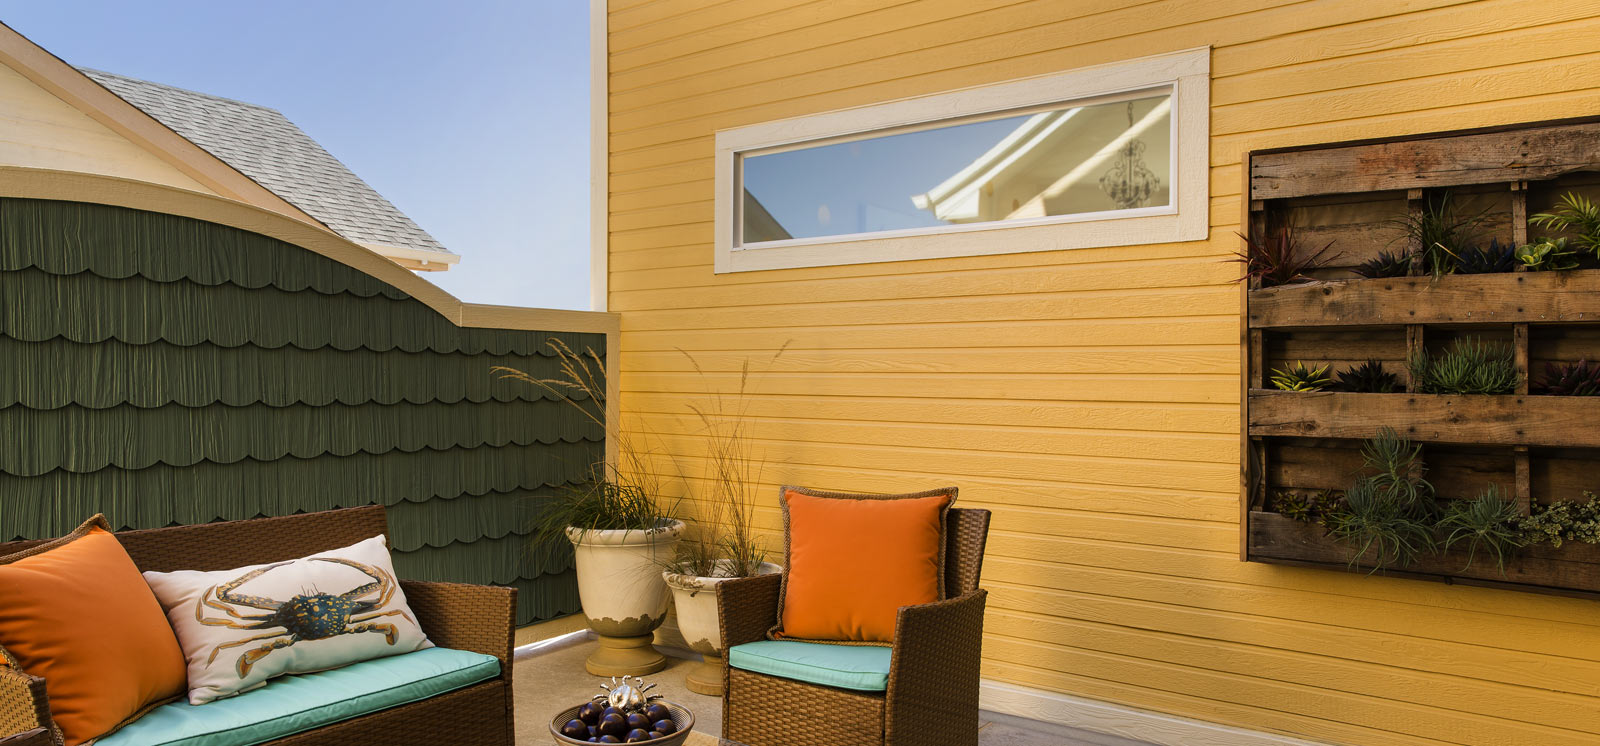 denver composite siding experts